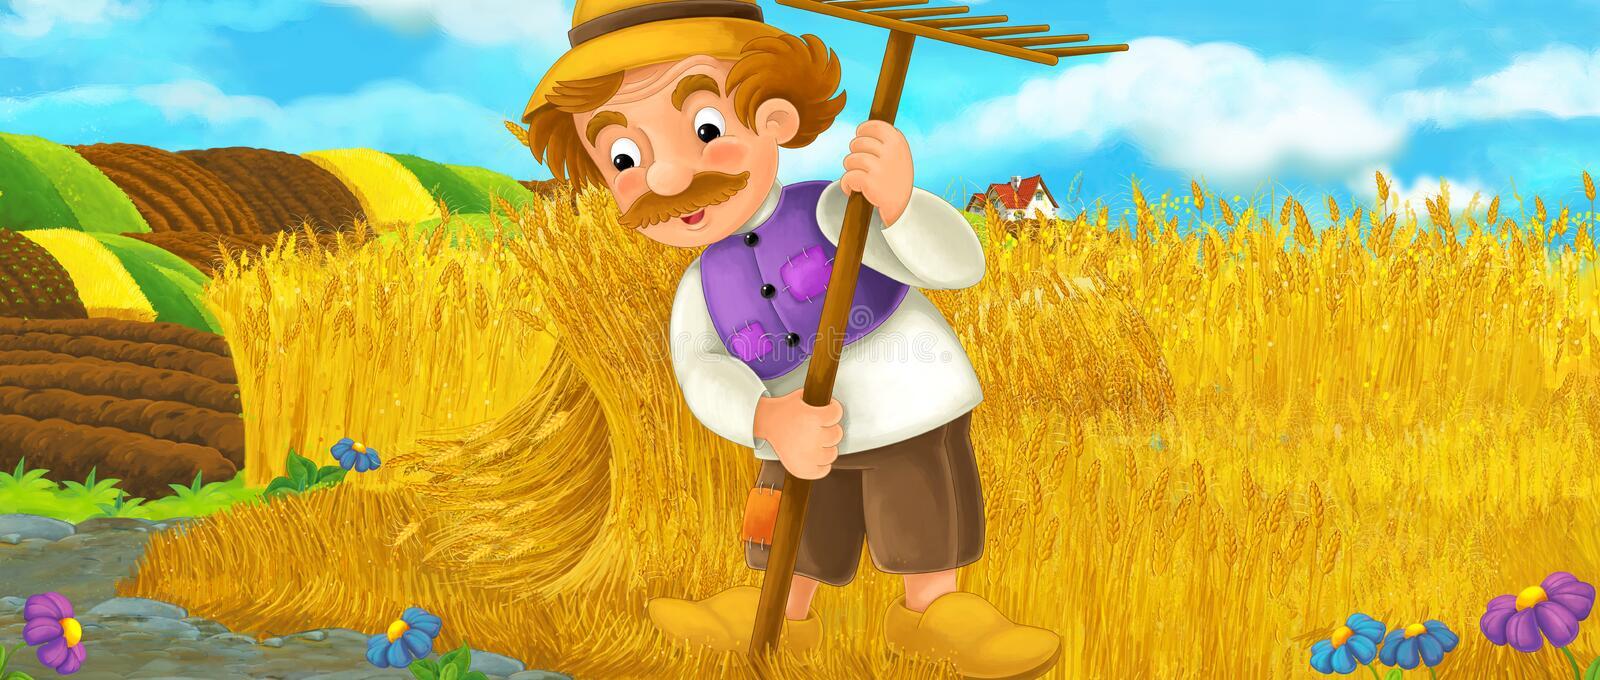 Cartoon rural scene with farmer man resting during work on the field royalty free illustration